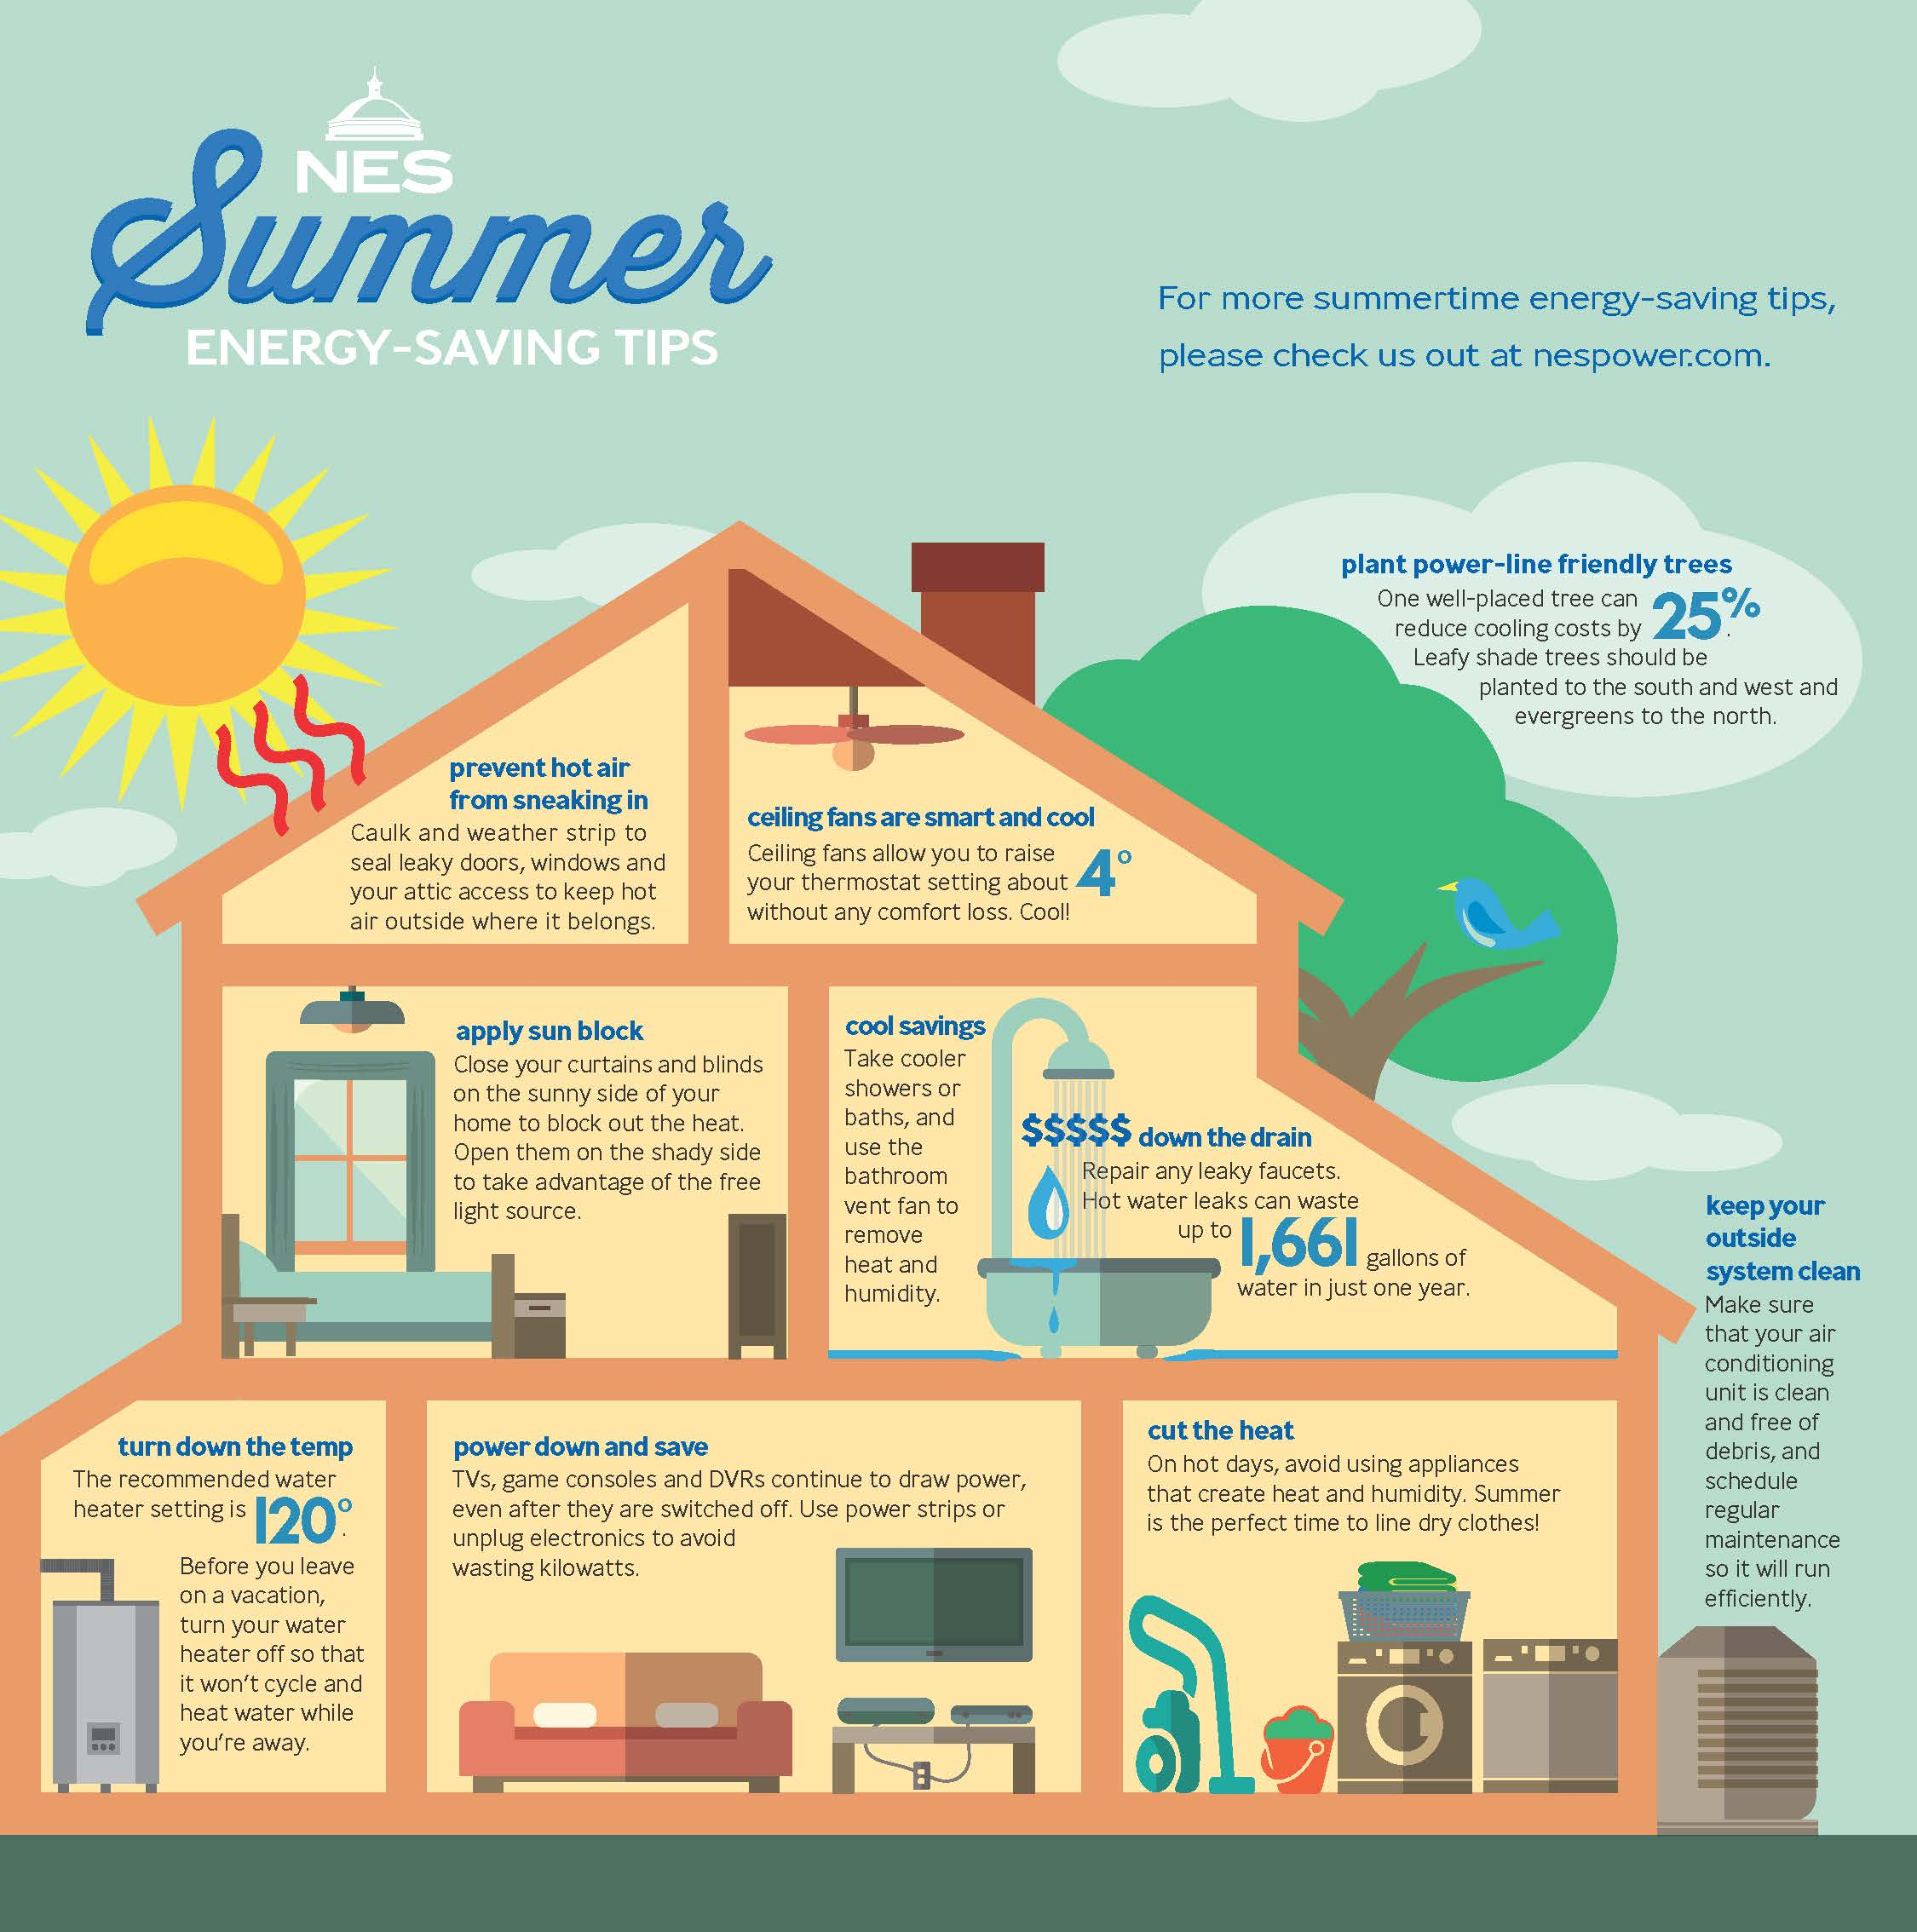 Nes Shows Cool Ways To Get Summertime Savings Nashville